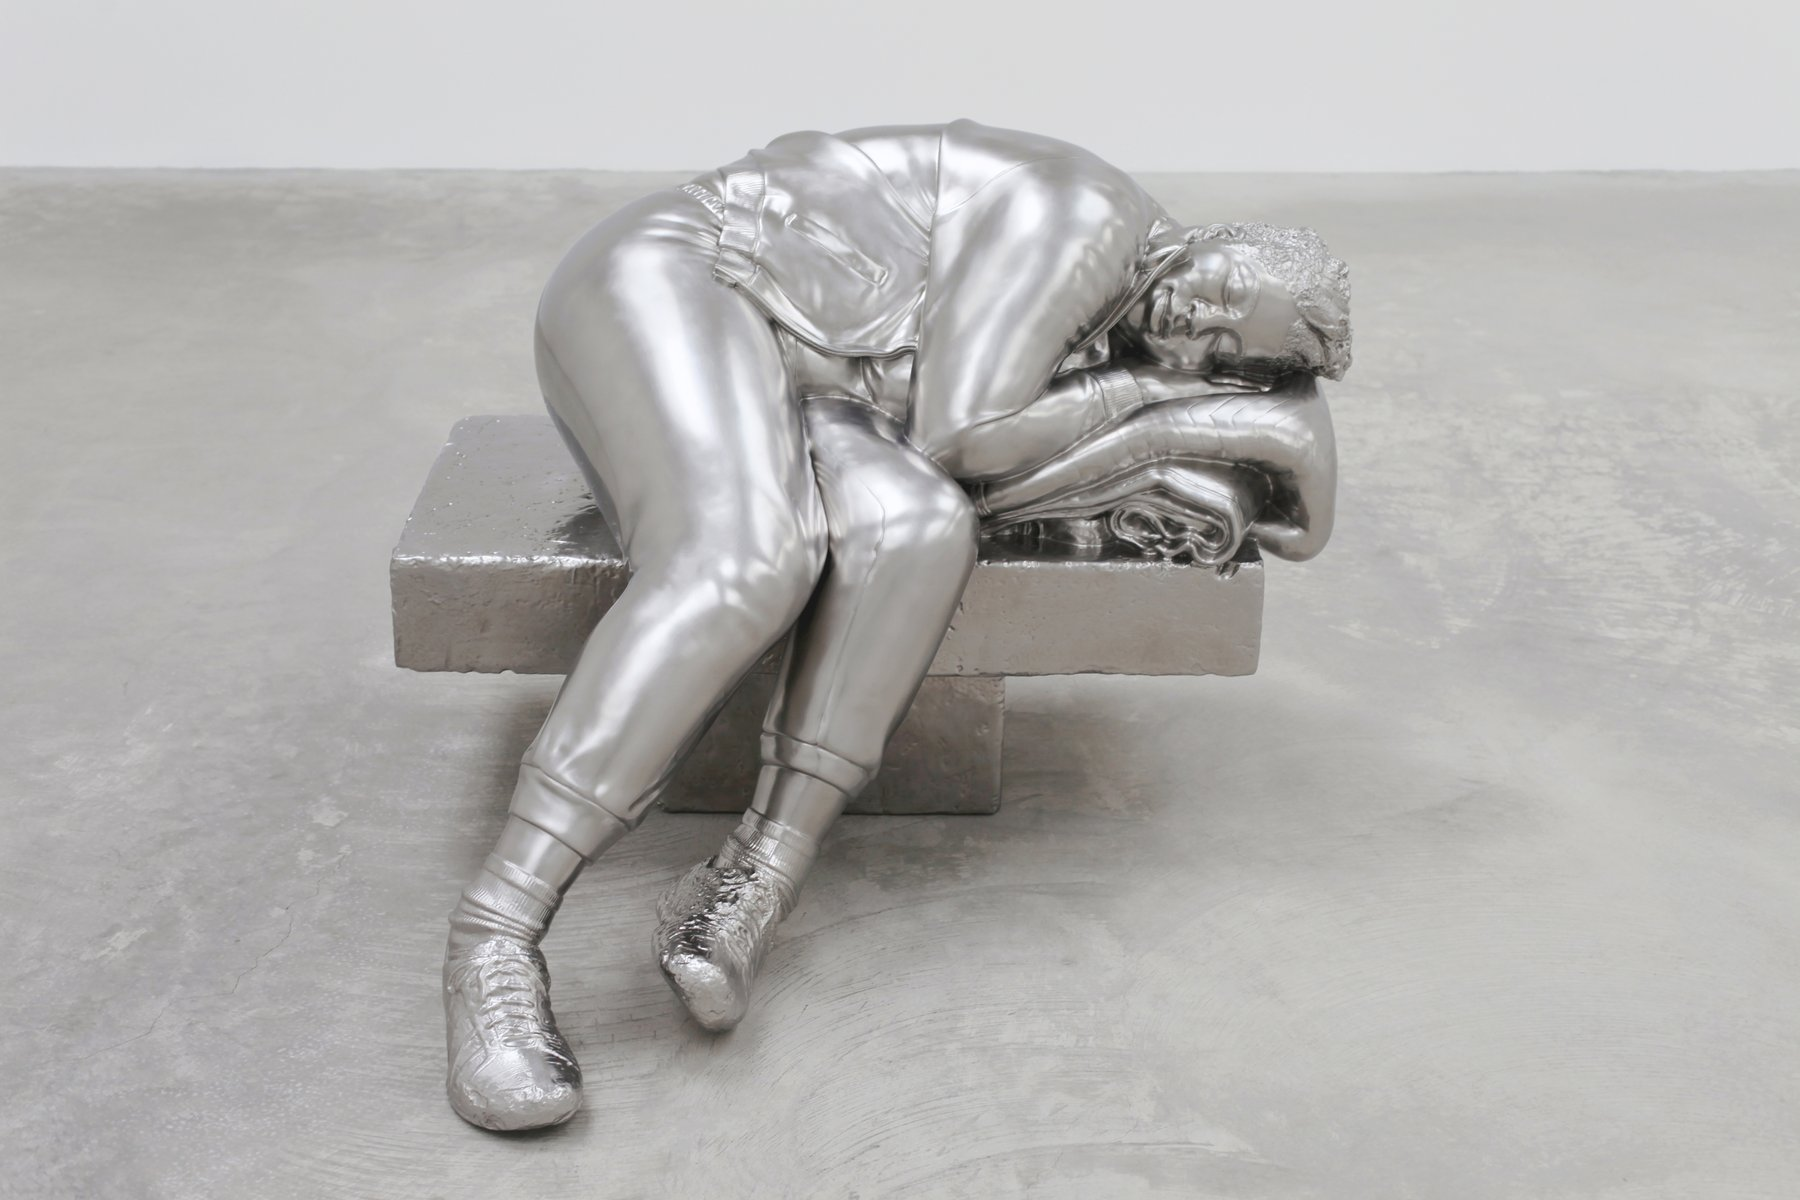 A silver sculpture of a woman sleeping on a bench.